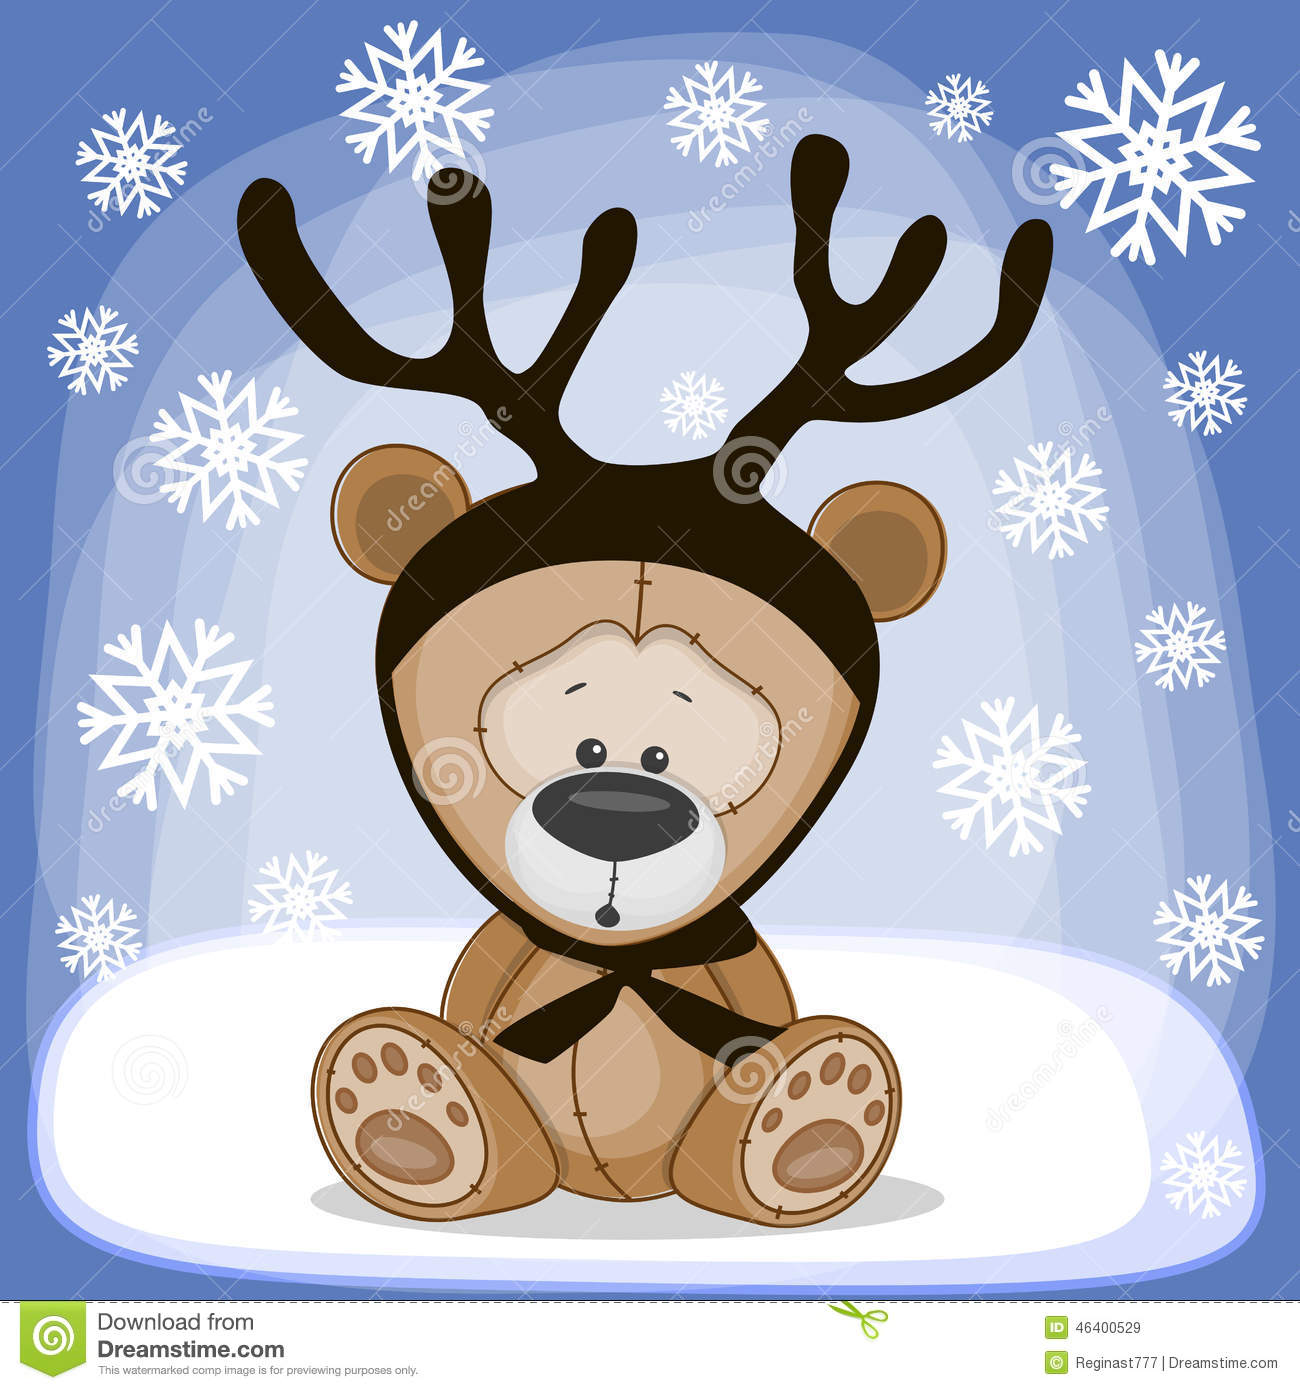 Image result for bear with antlers